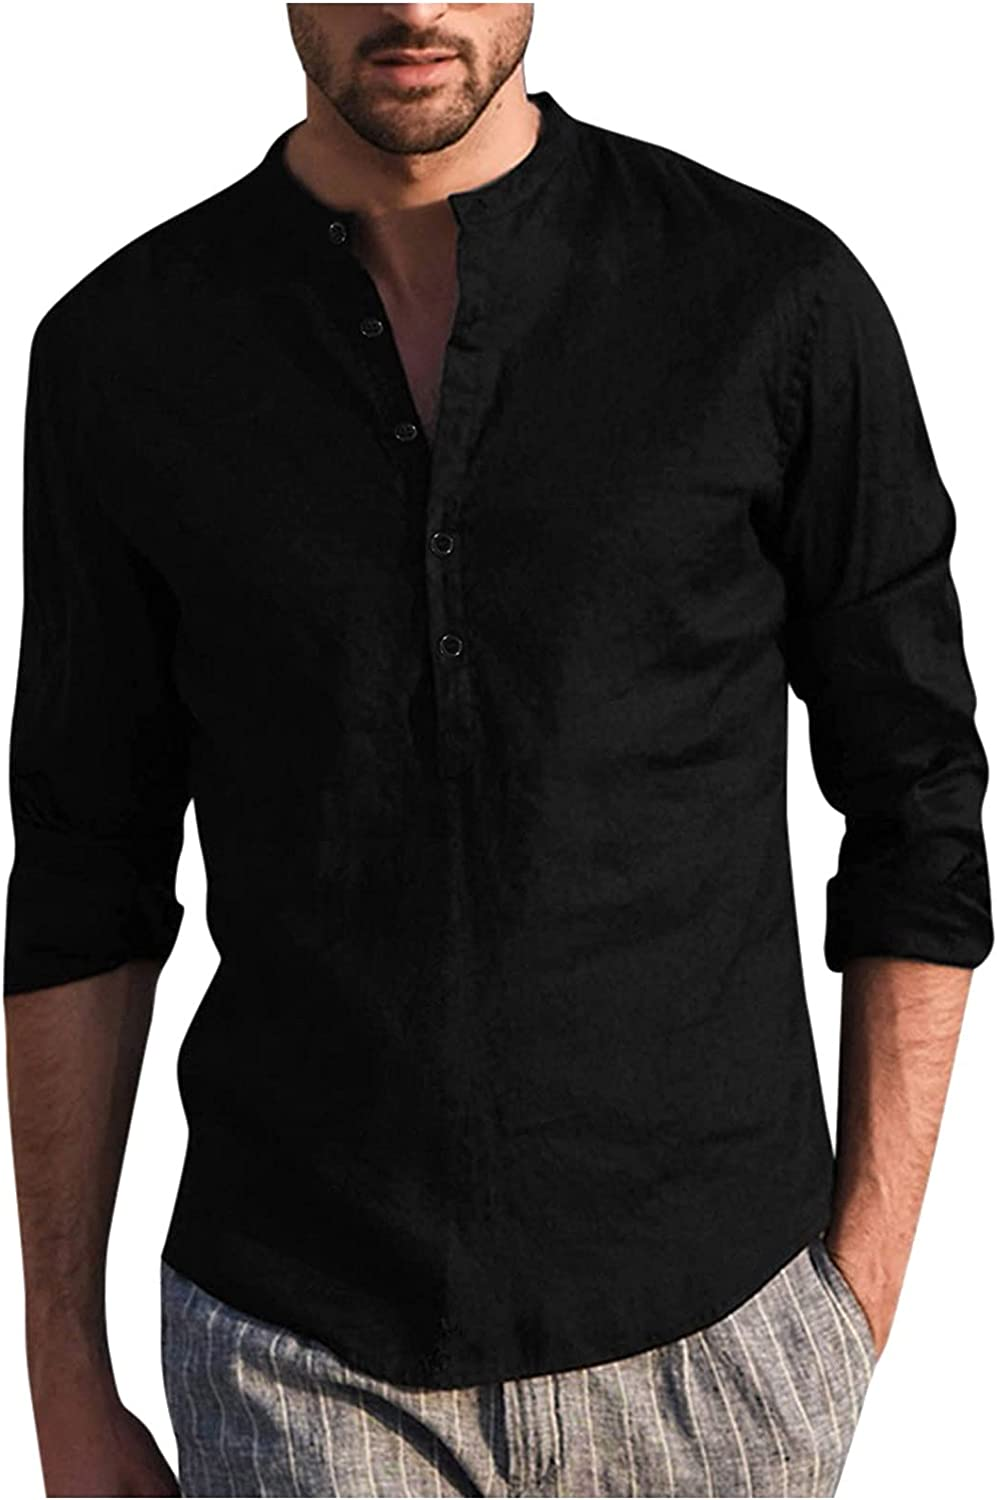 Aayomet Men's Cotton Linen Button Down Shirts Casual Long Sleeve T-Shirt Loose Fit Daily Yoga Sport Beach Tee Shirts Tops